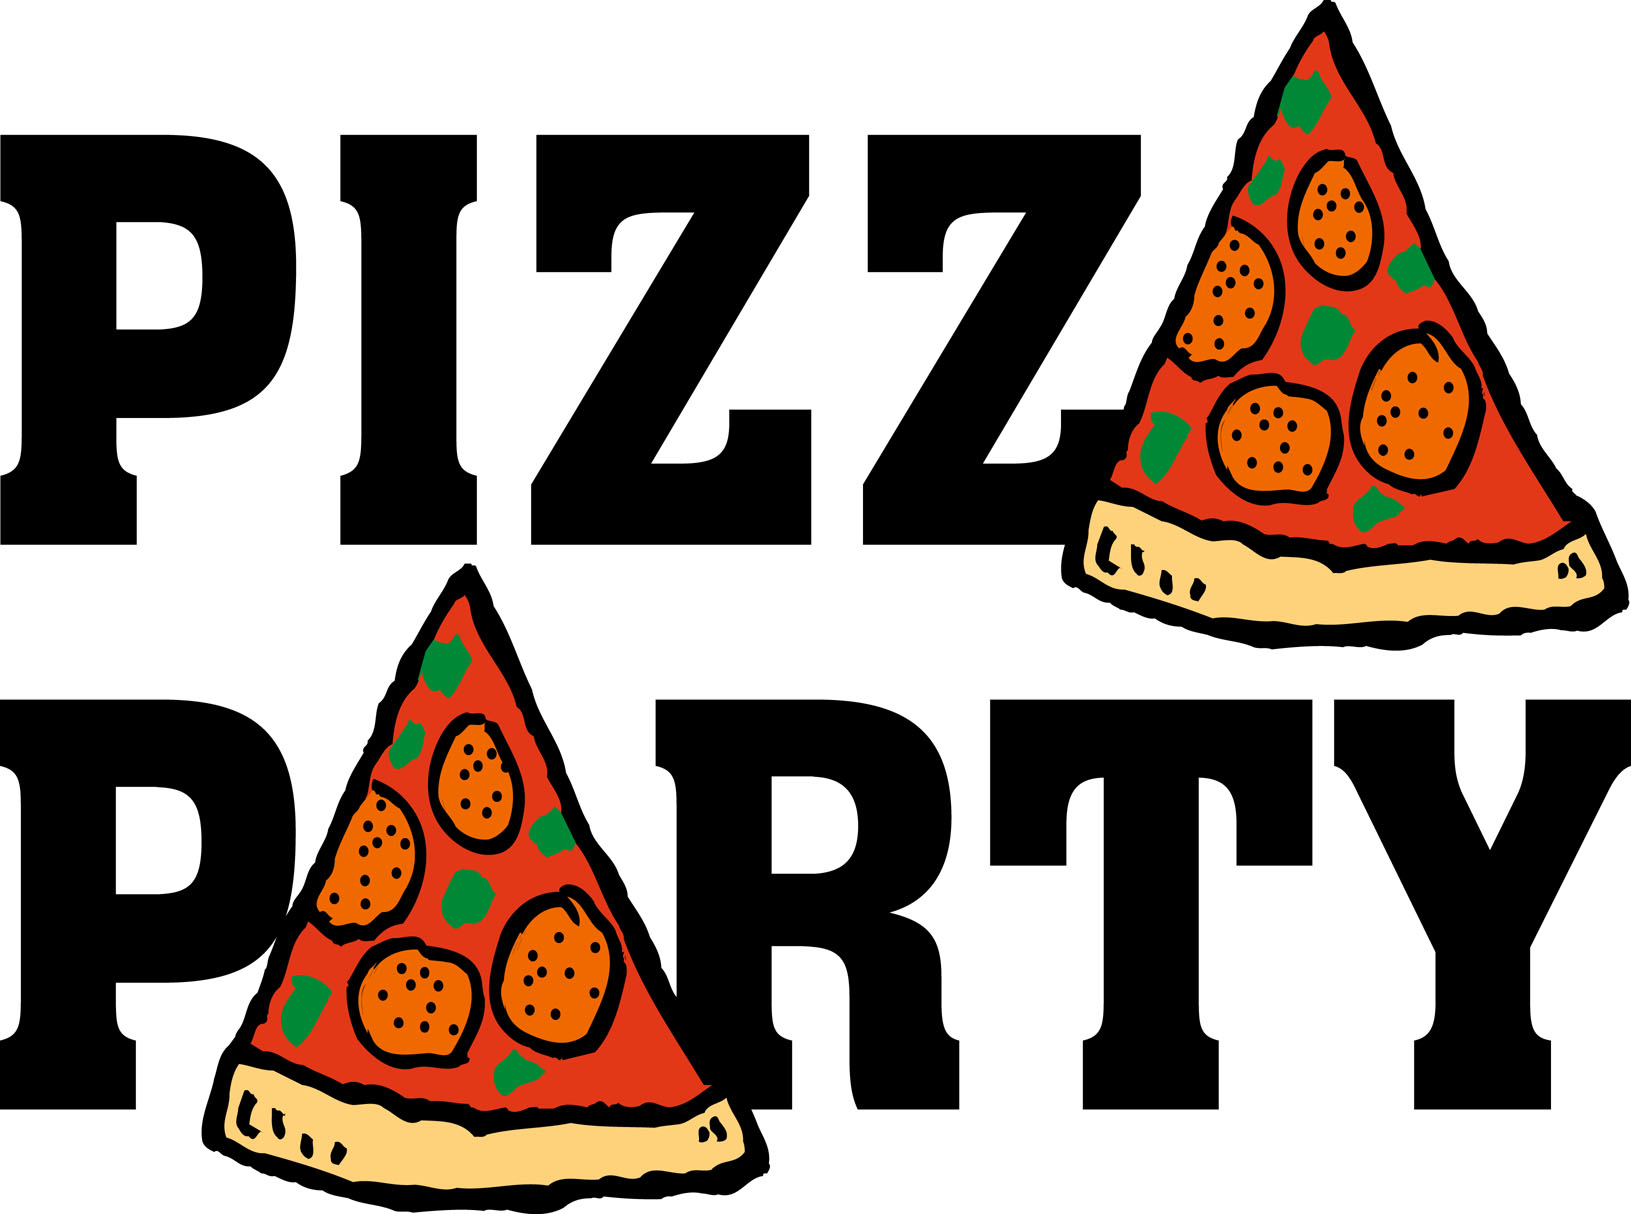 Image result for pizza party free image